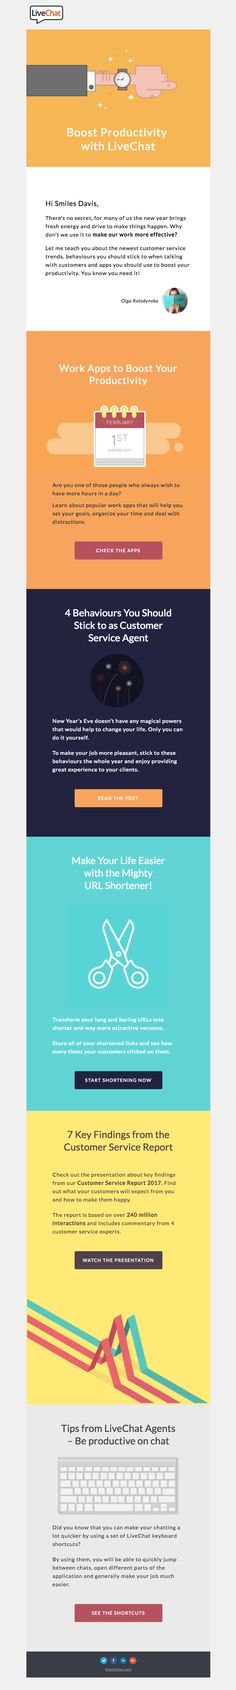 Boost Productivity with LiveChat [Monthly Newsletter] - Really Good Emails